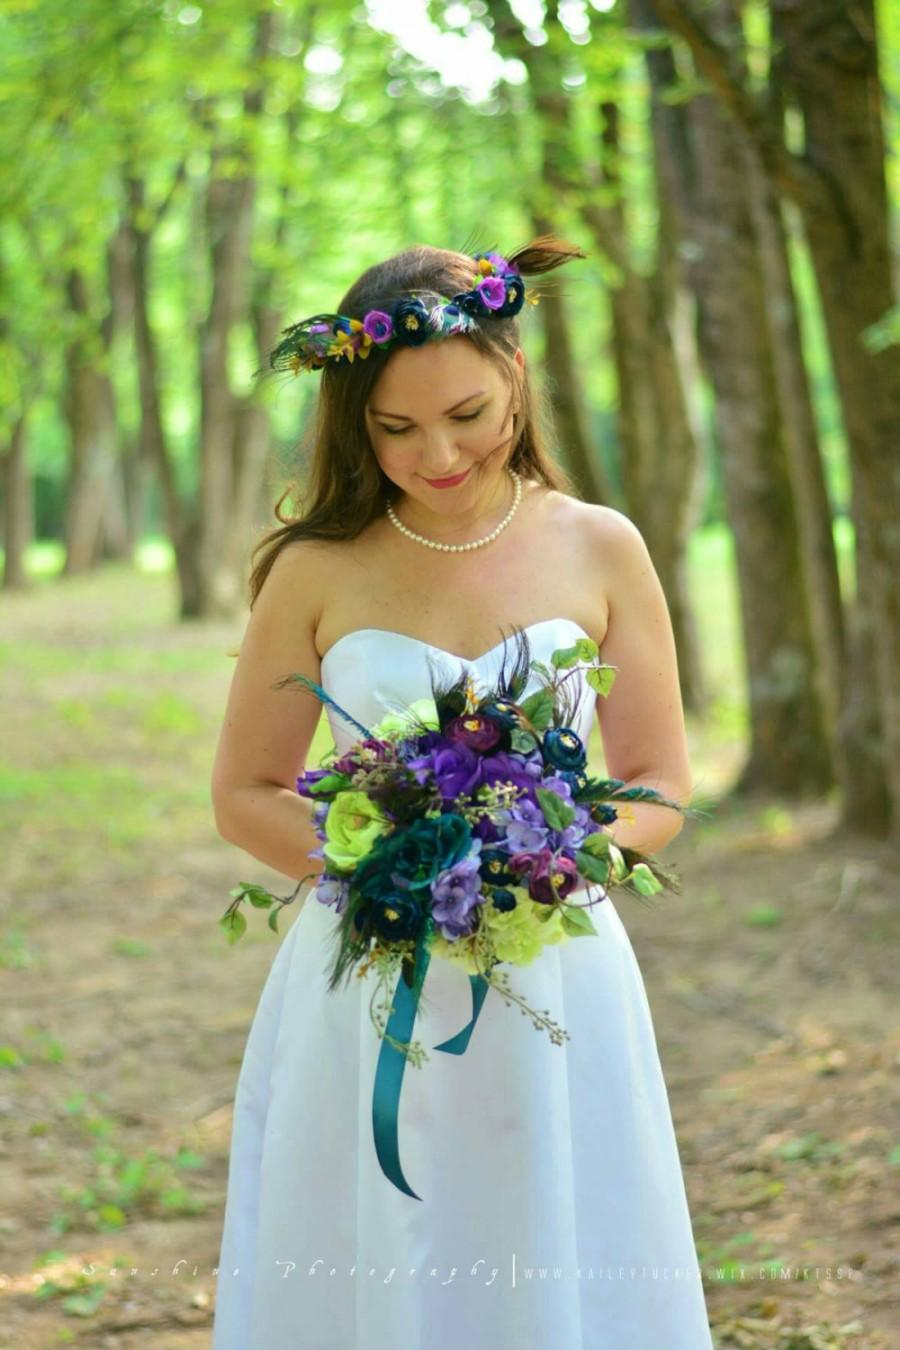 Mariage - Peacock bouquet - Peacock wedding flowers - Purple and teal bridal bouquet - Peacock roses, hydrangea and ranunculus - Silk bridal bouquets